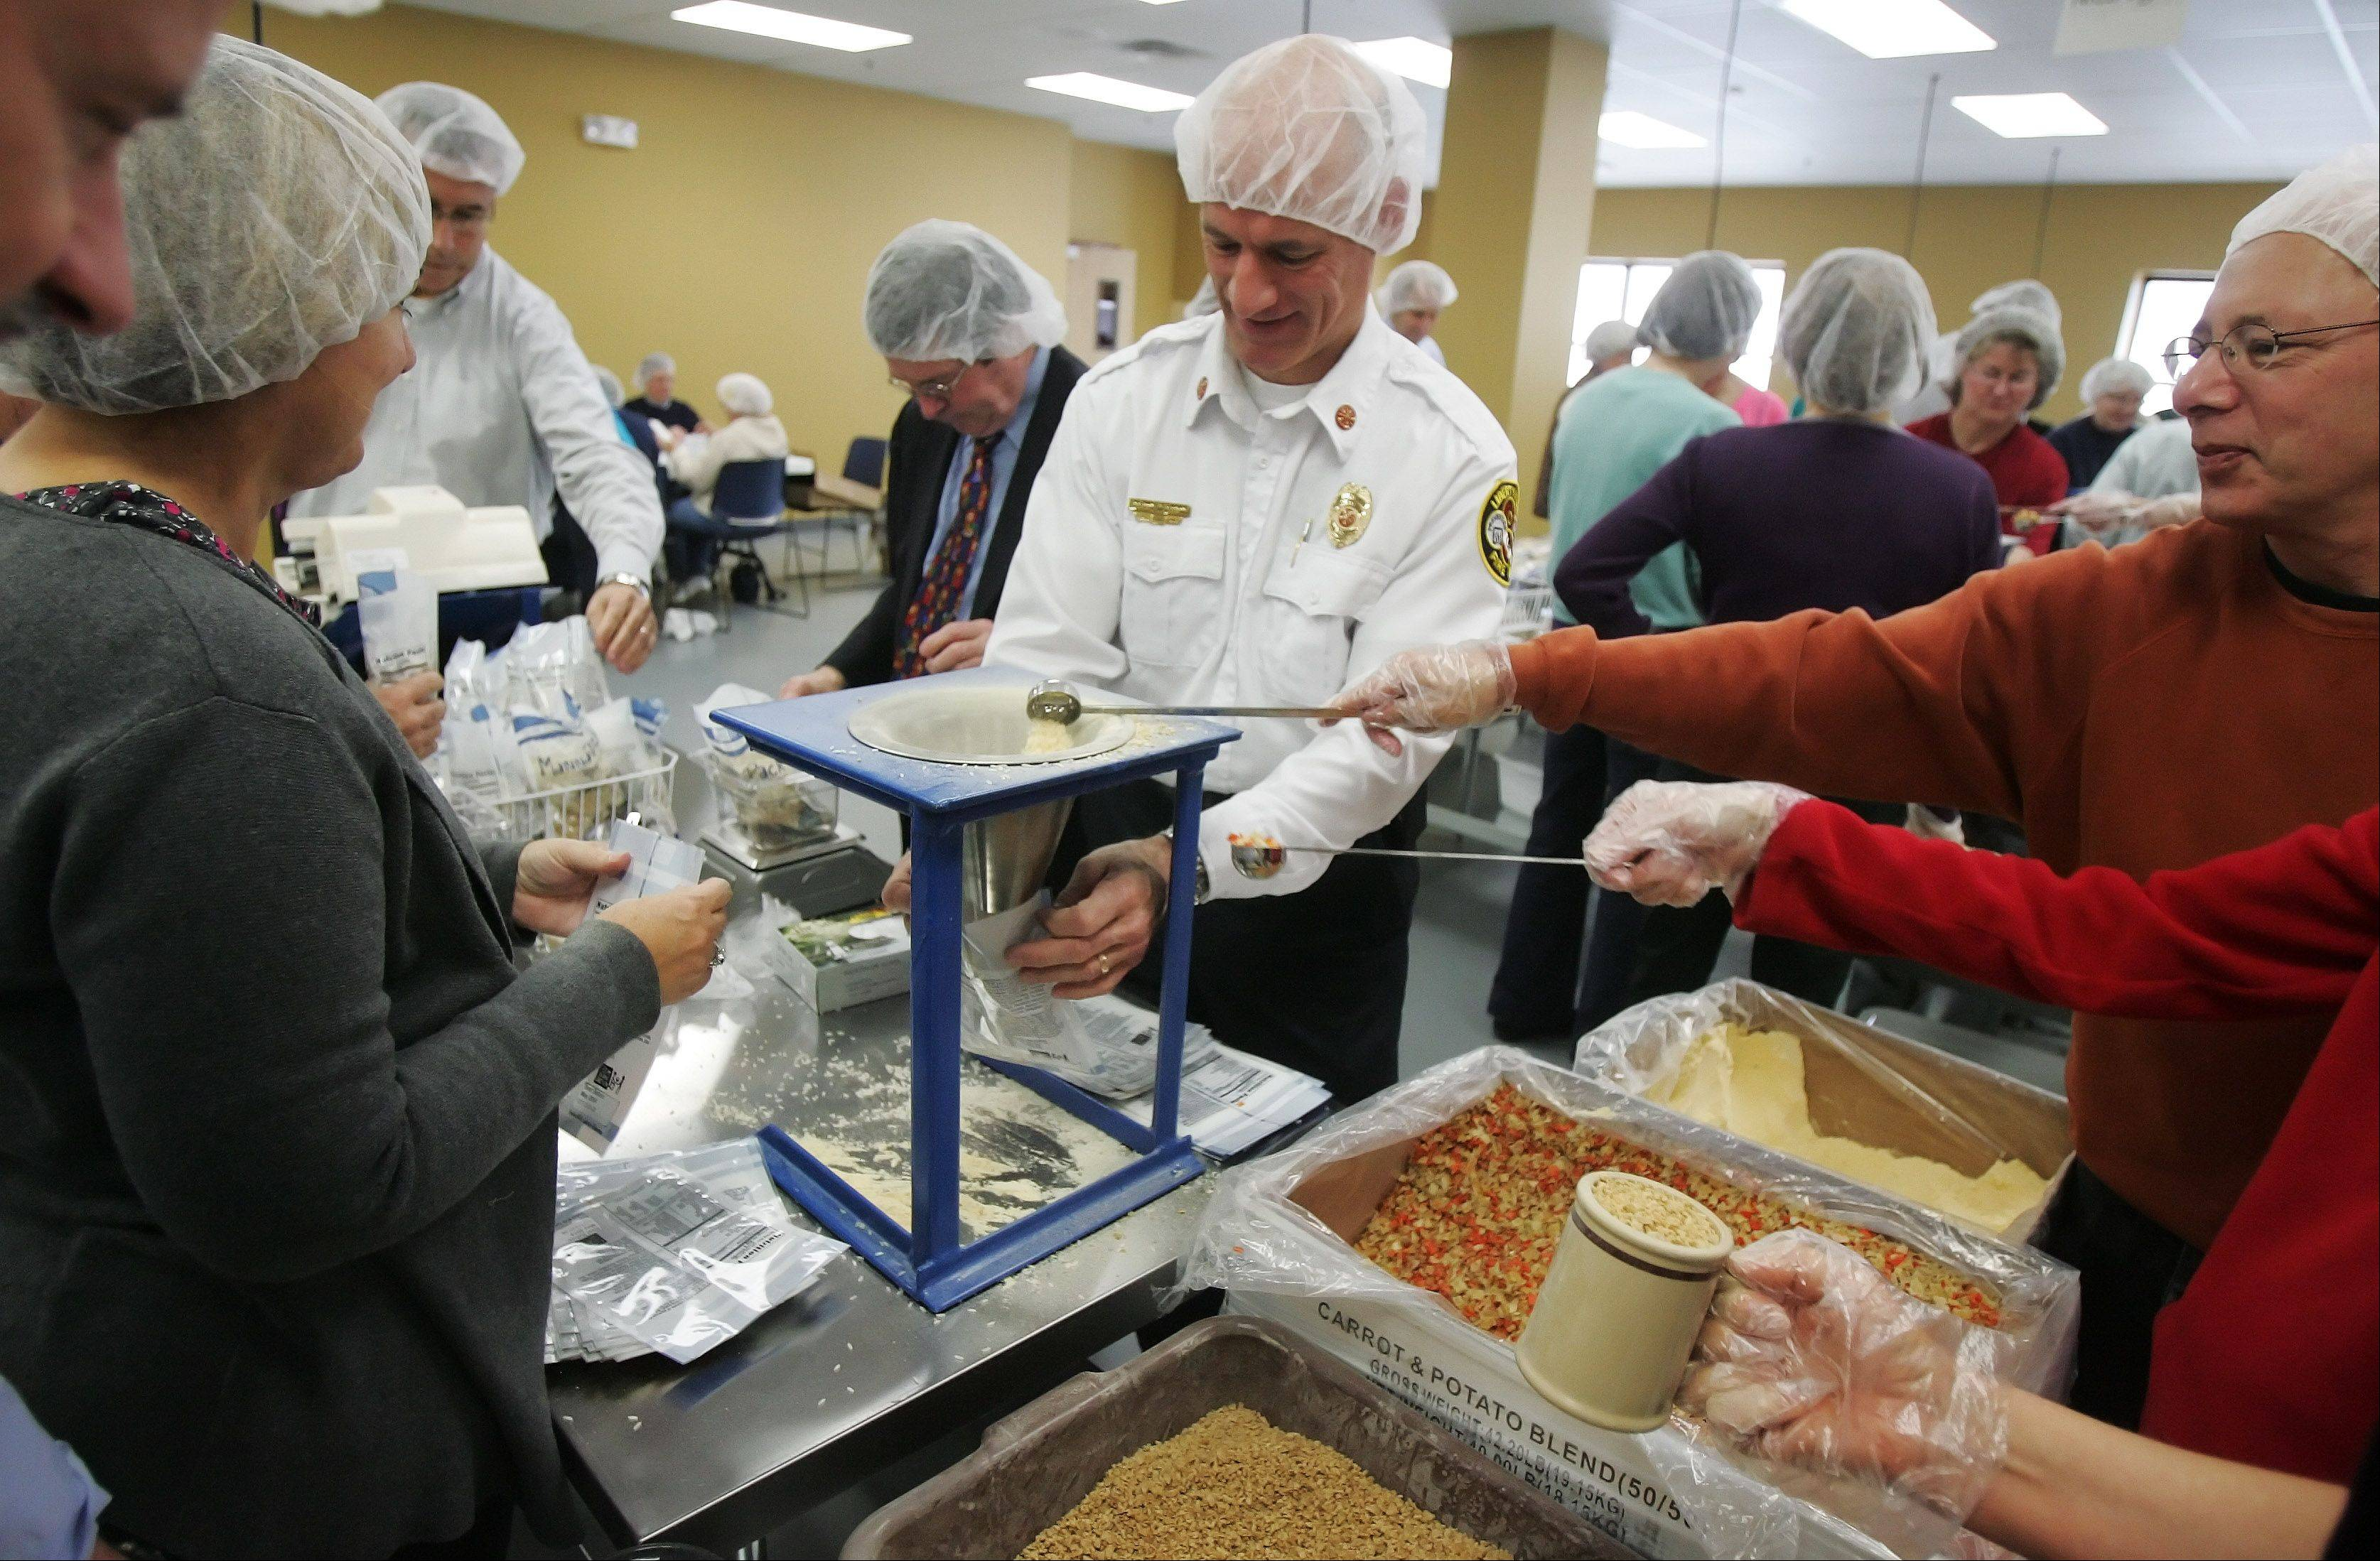 Libertyville Fire Chief Rich Careni, center, and Mayor Terry Wepler, left, join other volunteers during the inaugural meal-packing session Wednesday at Feed My Starving Children in Libertyville. The organization will now be able to prepare 70 million meals annually at the three Chicago area locations in Libertyville, Schaumburg and Aurora.